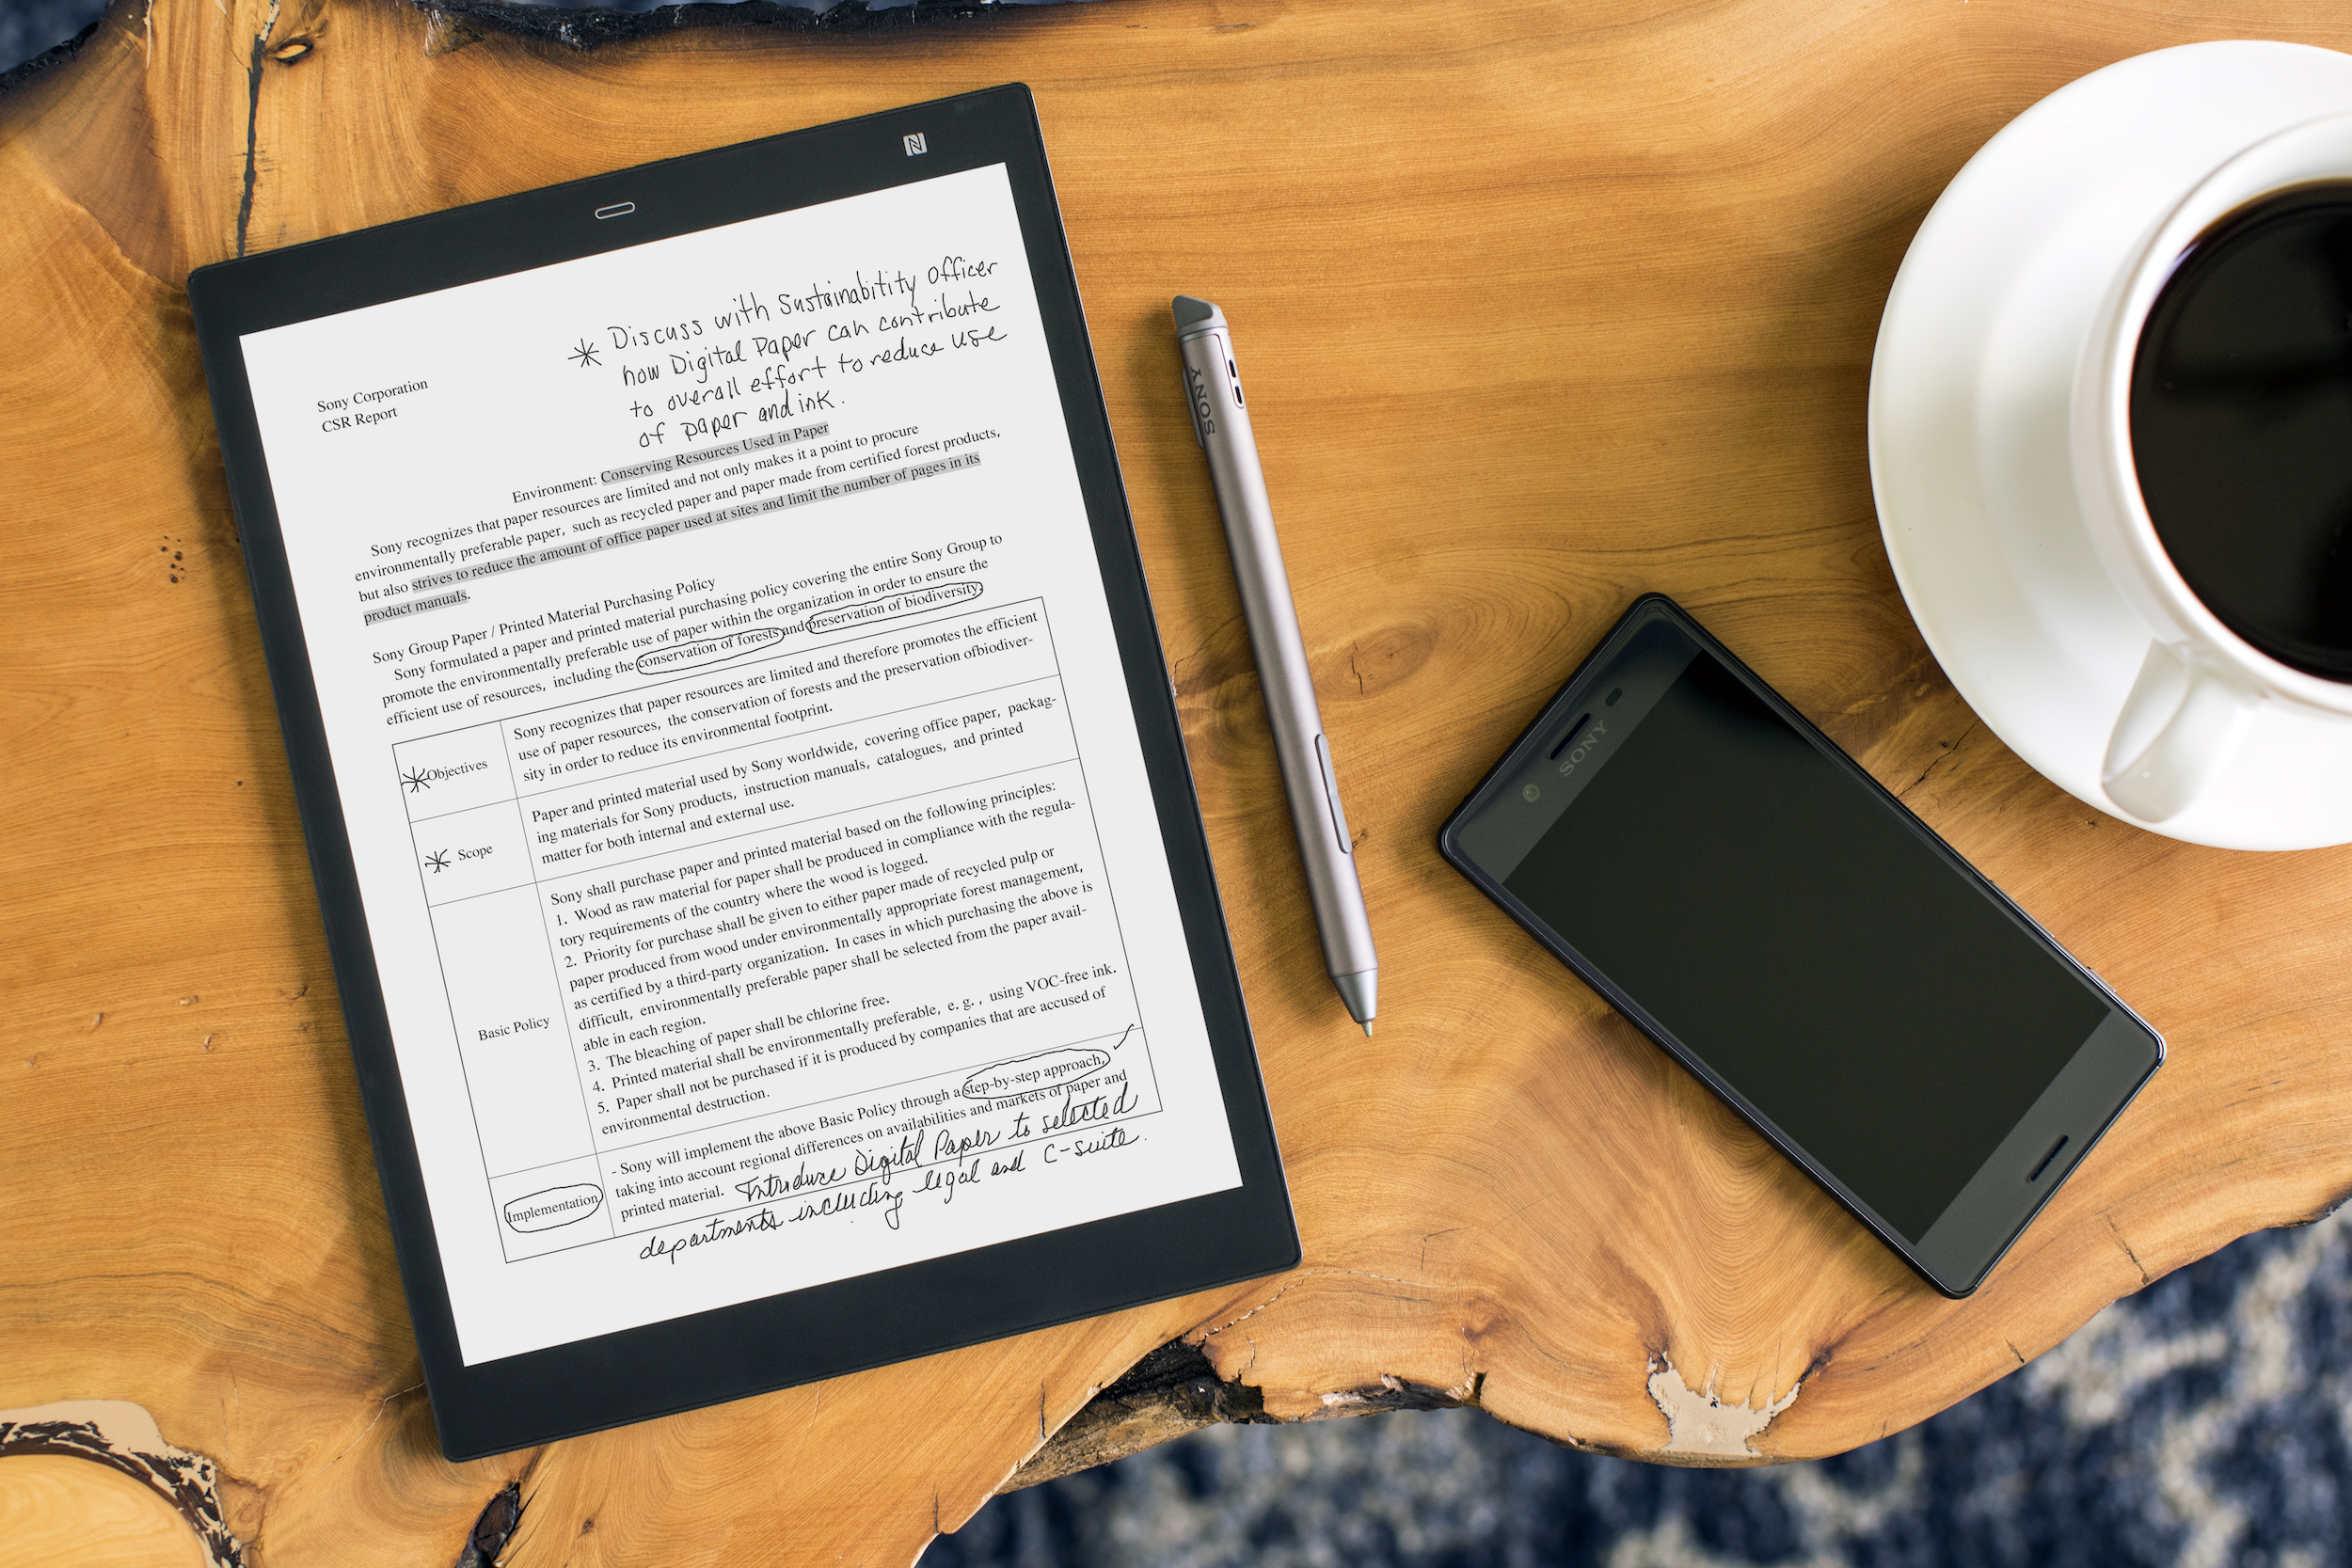 Sony shrinks its Digital Paper tablet down to a more manageable 10 inches